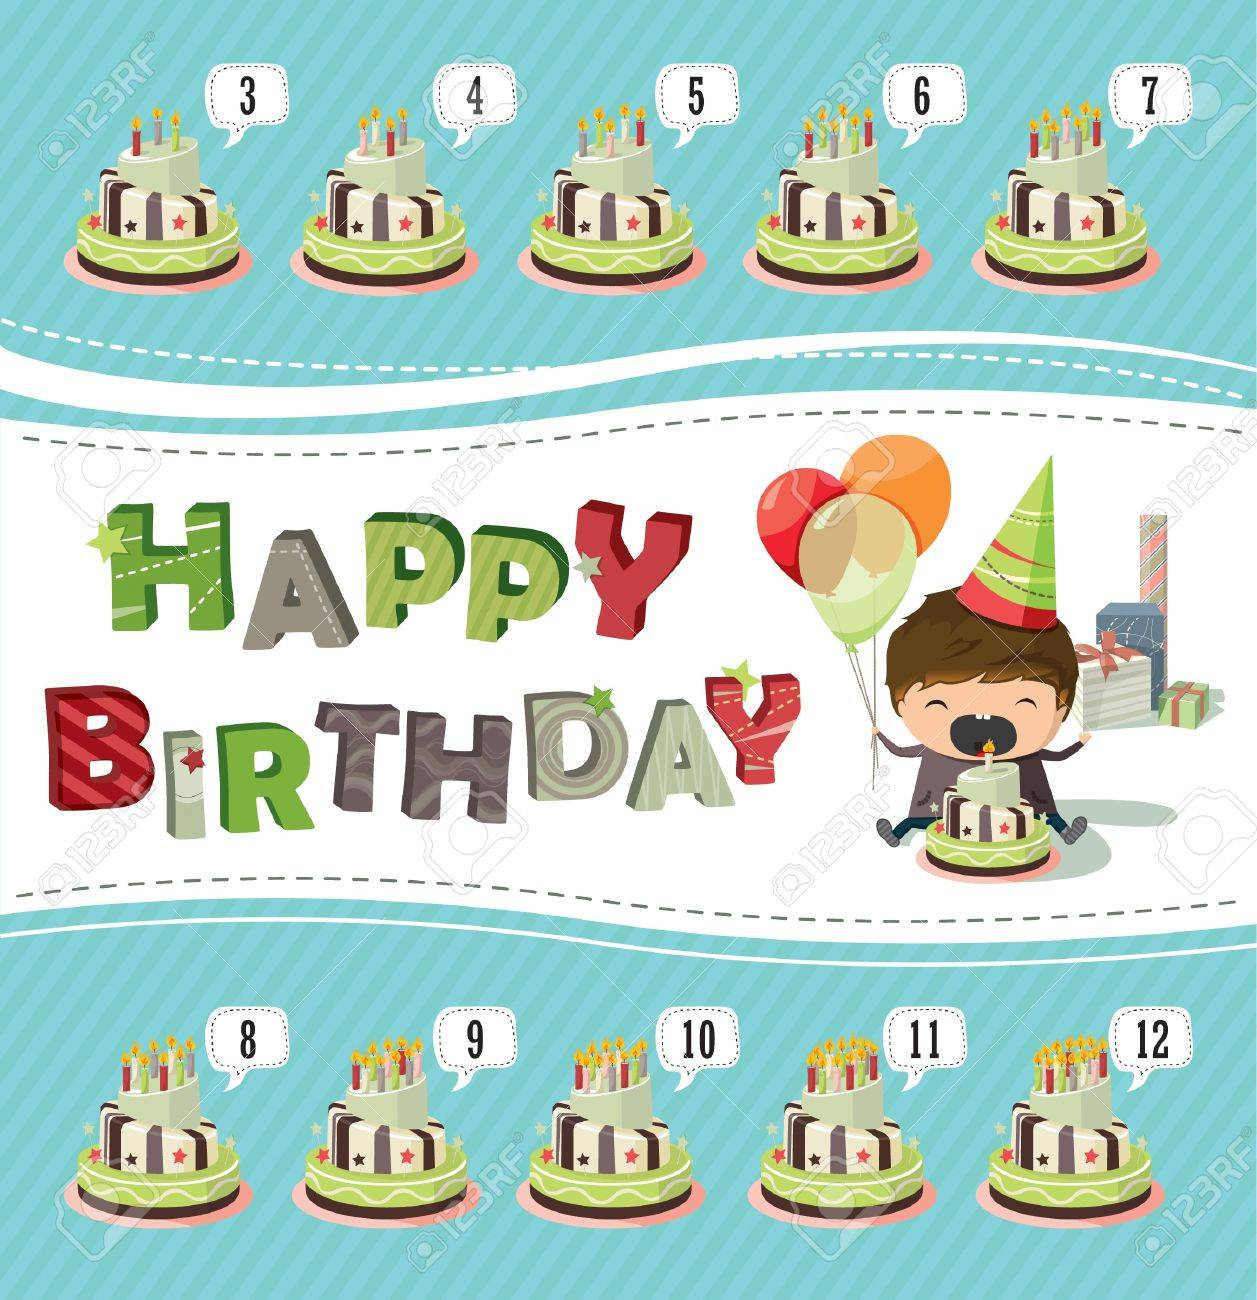 A Birthday Card With A Boy Holding Balloons And Trying To Blow – Birthday Card for Boy